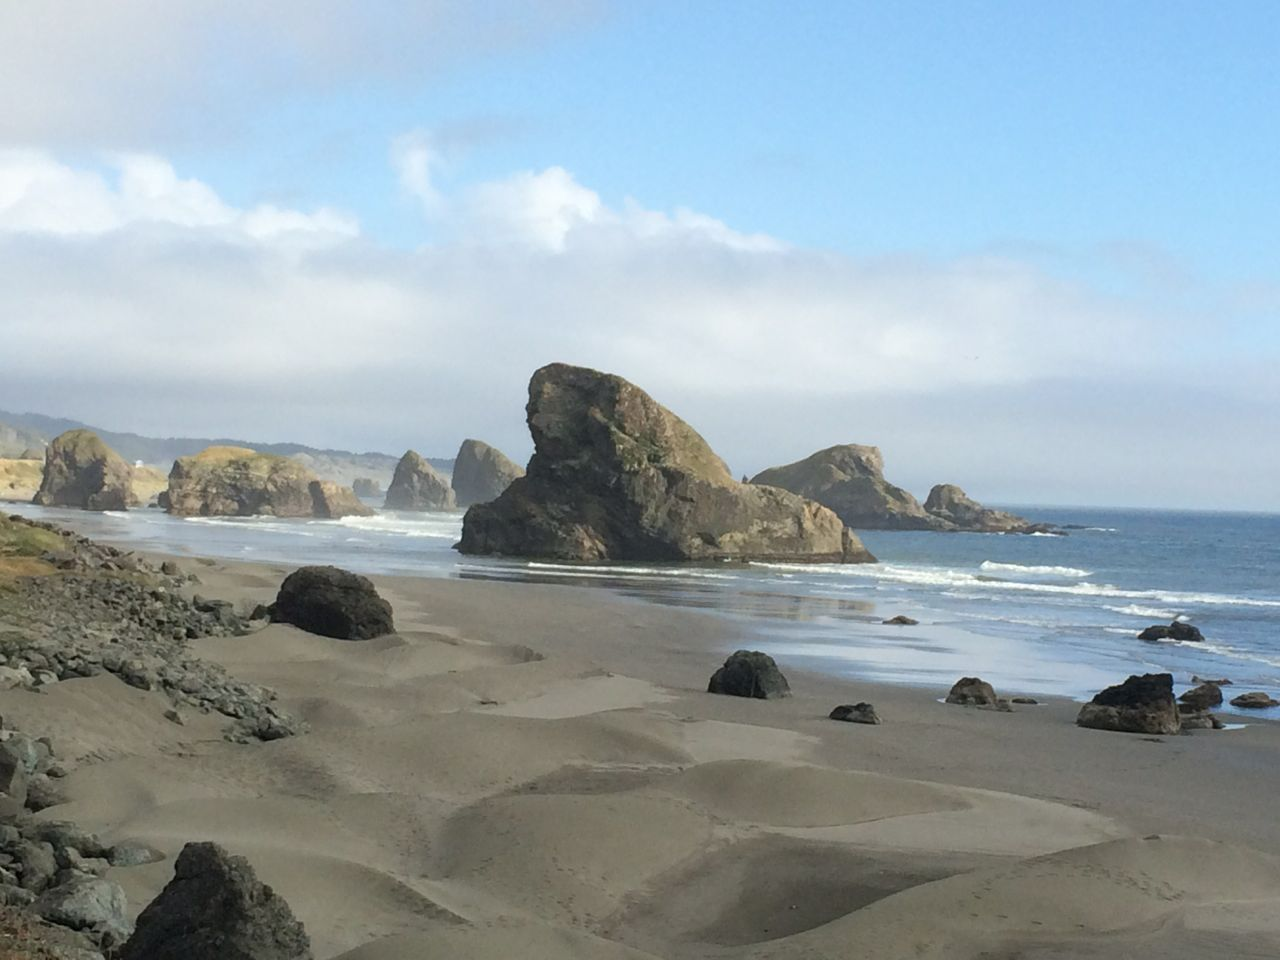 Gold Beach, Oregon, June 12, 2014